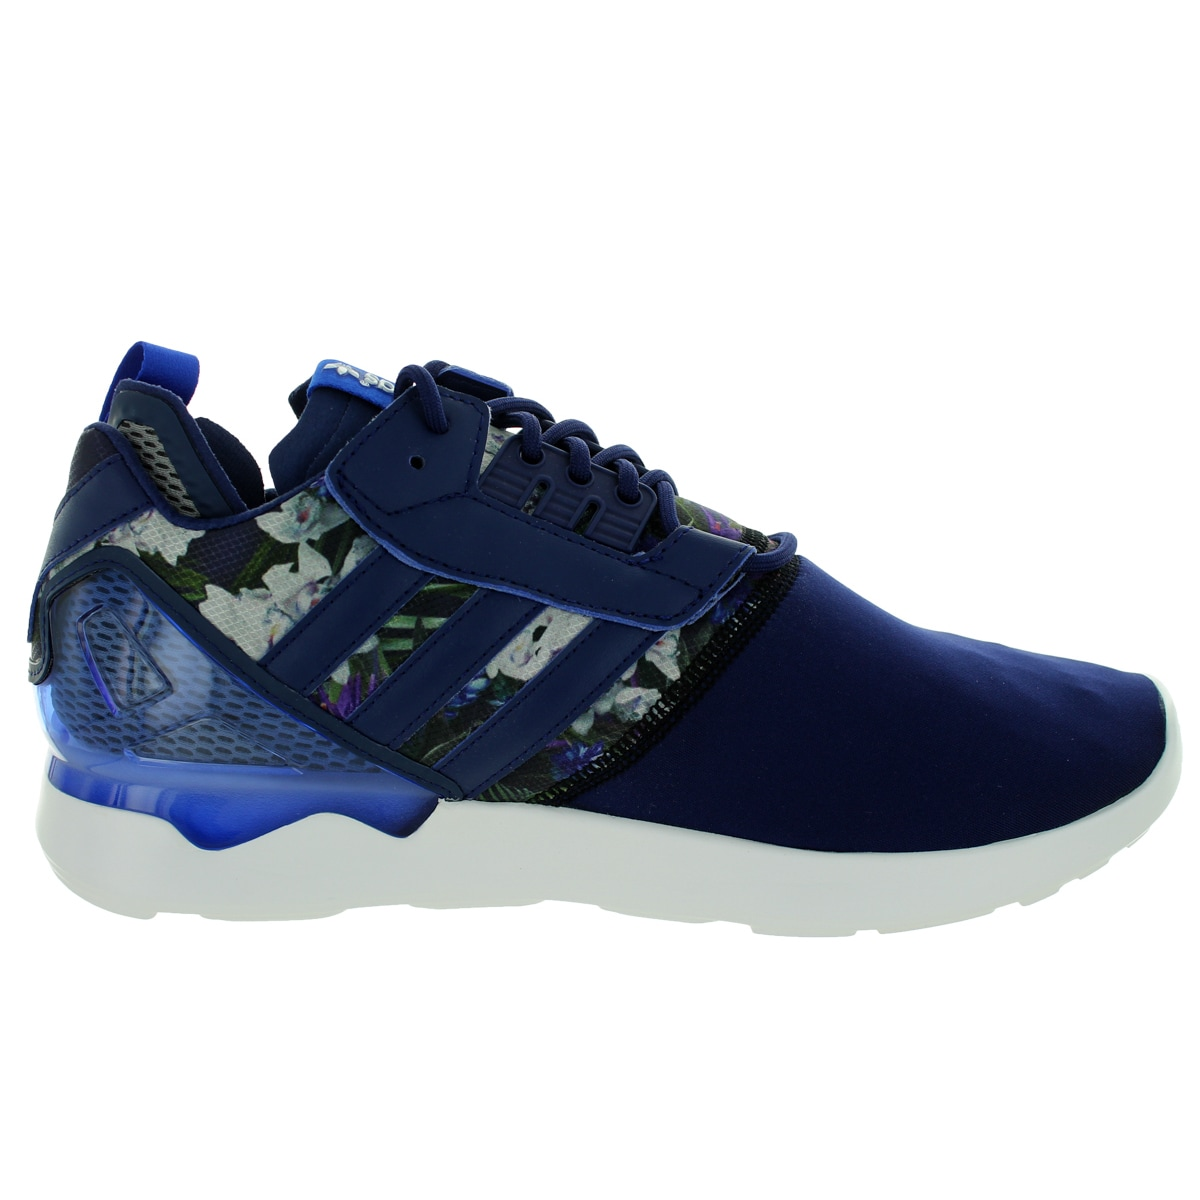 26f013996c3bc Shop Adidas Men s Zx 8000 Boost Originals Night Sky Night Sky Bold Blue  Running Shoe - Free Shipping Today - Overstock.com - 12319889